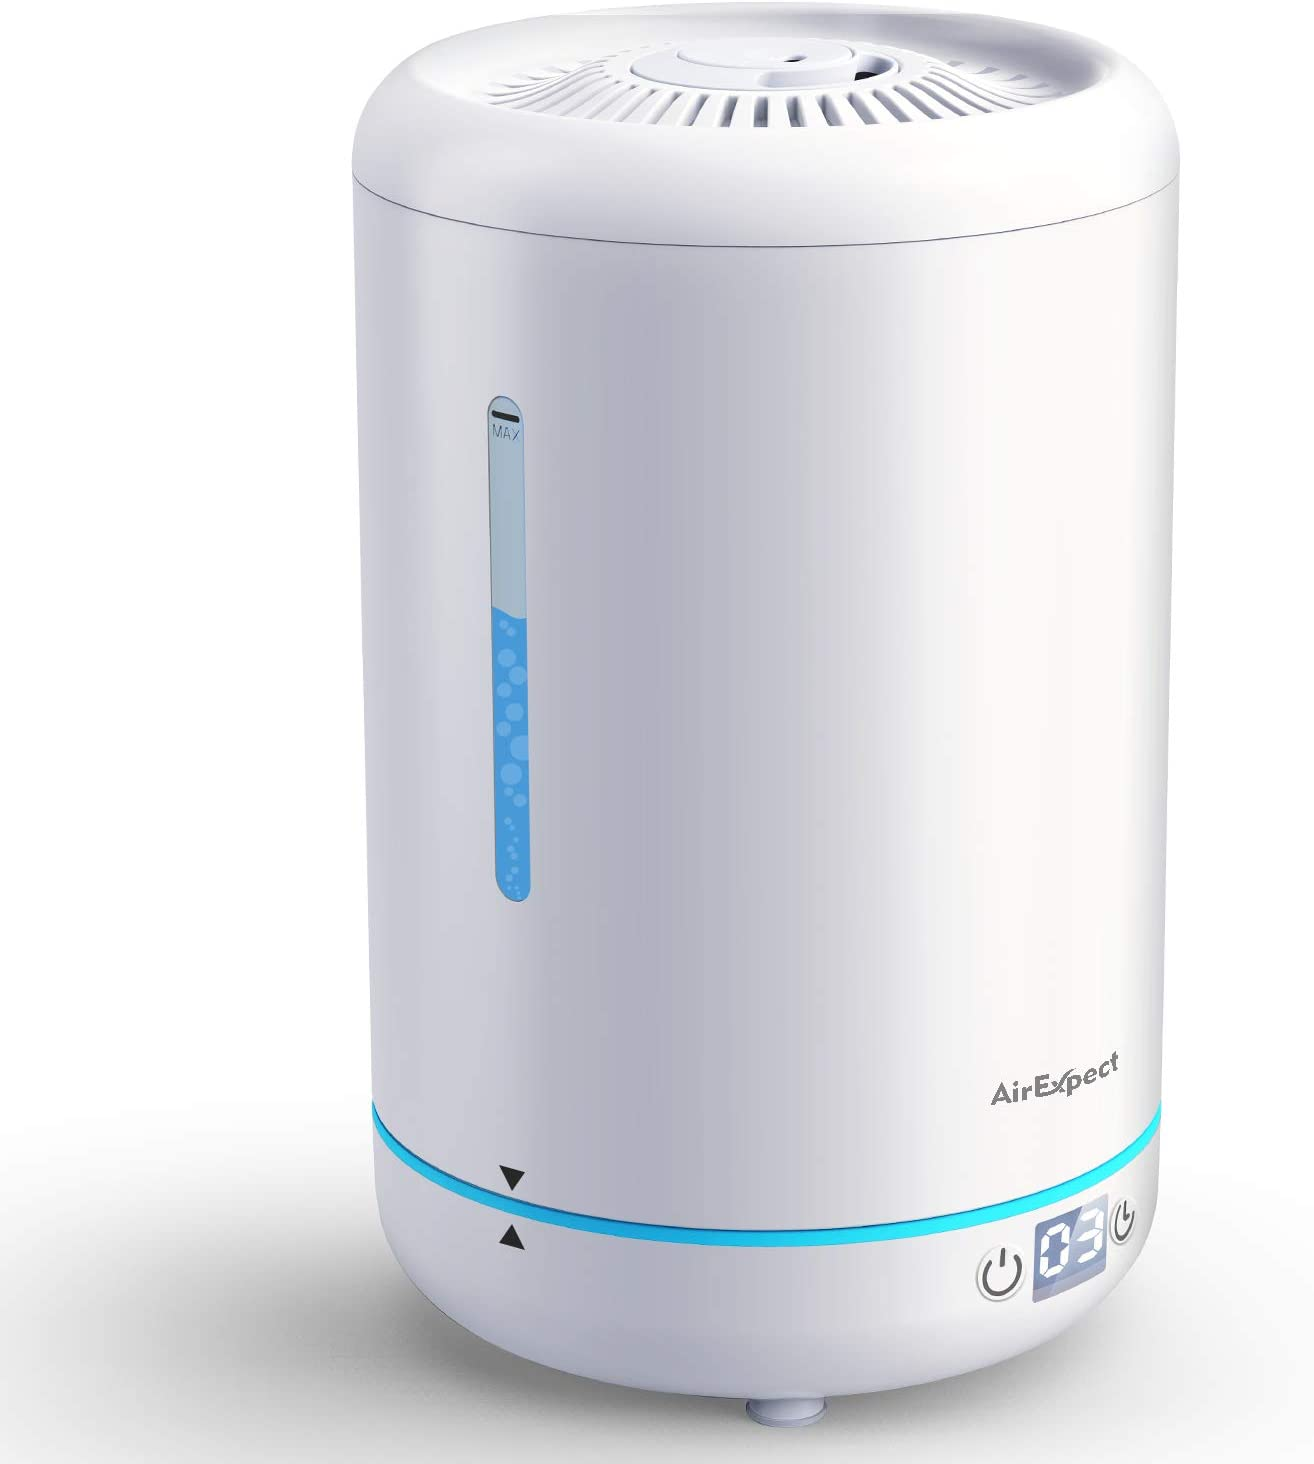 Office Home 5L//1.32Gal Water Tank Top Fill Cool Mist Ultrasonic Humidifiers with Adjustable Mist Output for Bedroom ROCKPALS Humidifiers for Bedroom